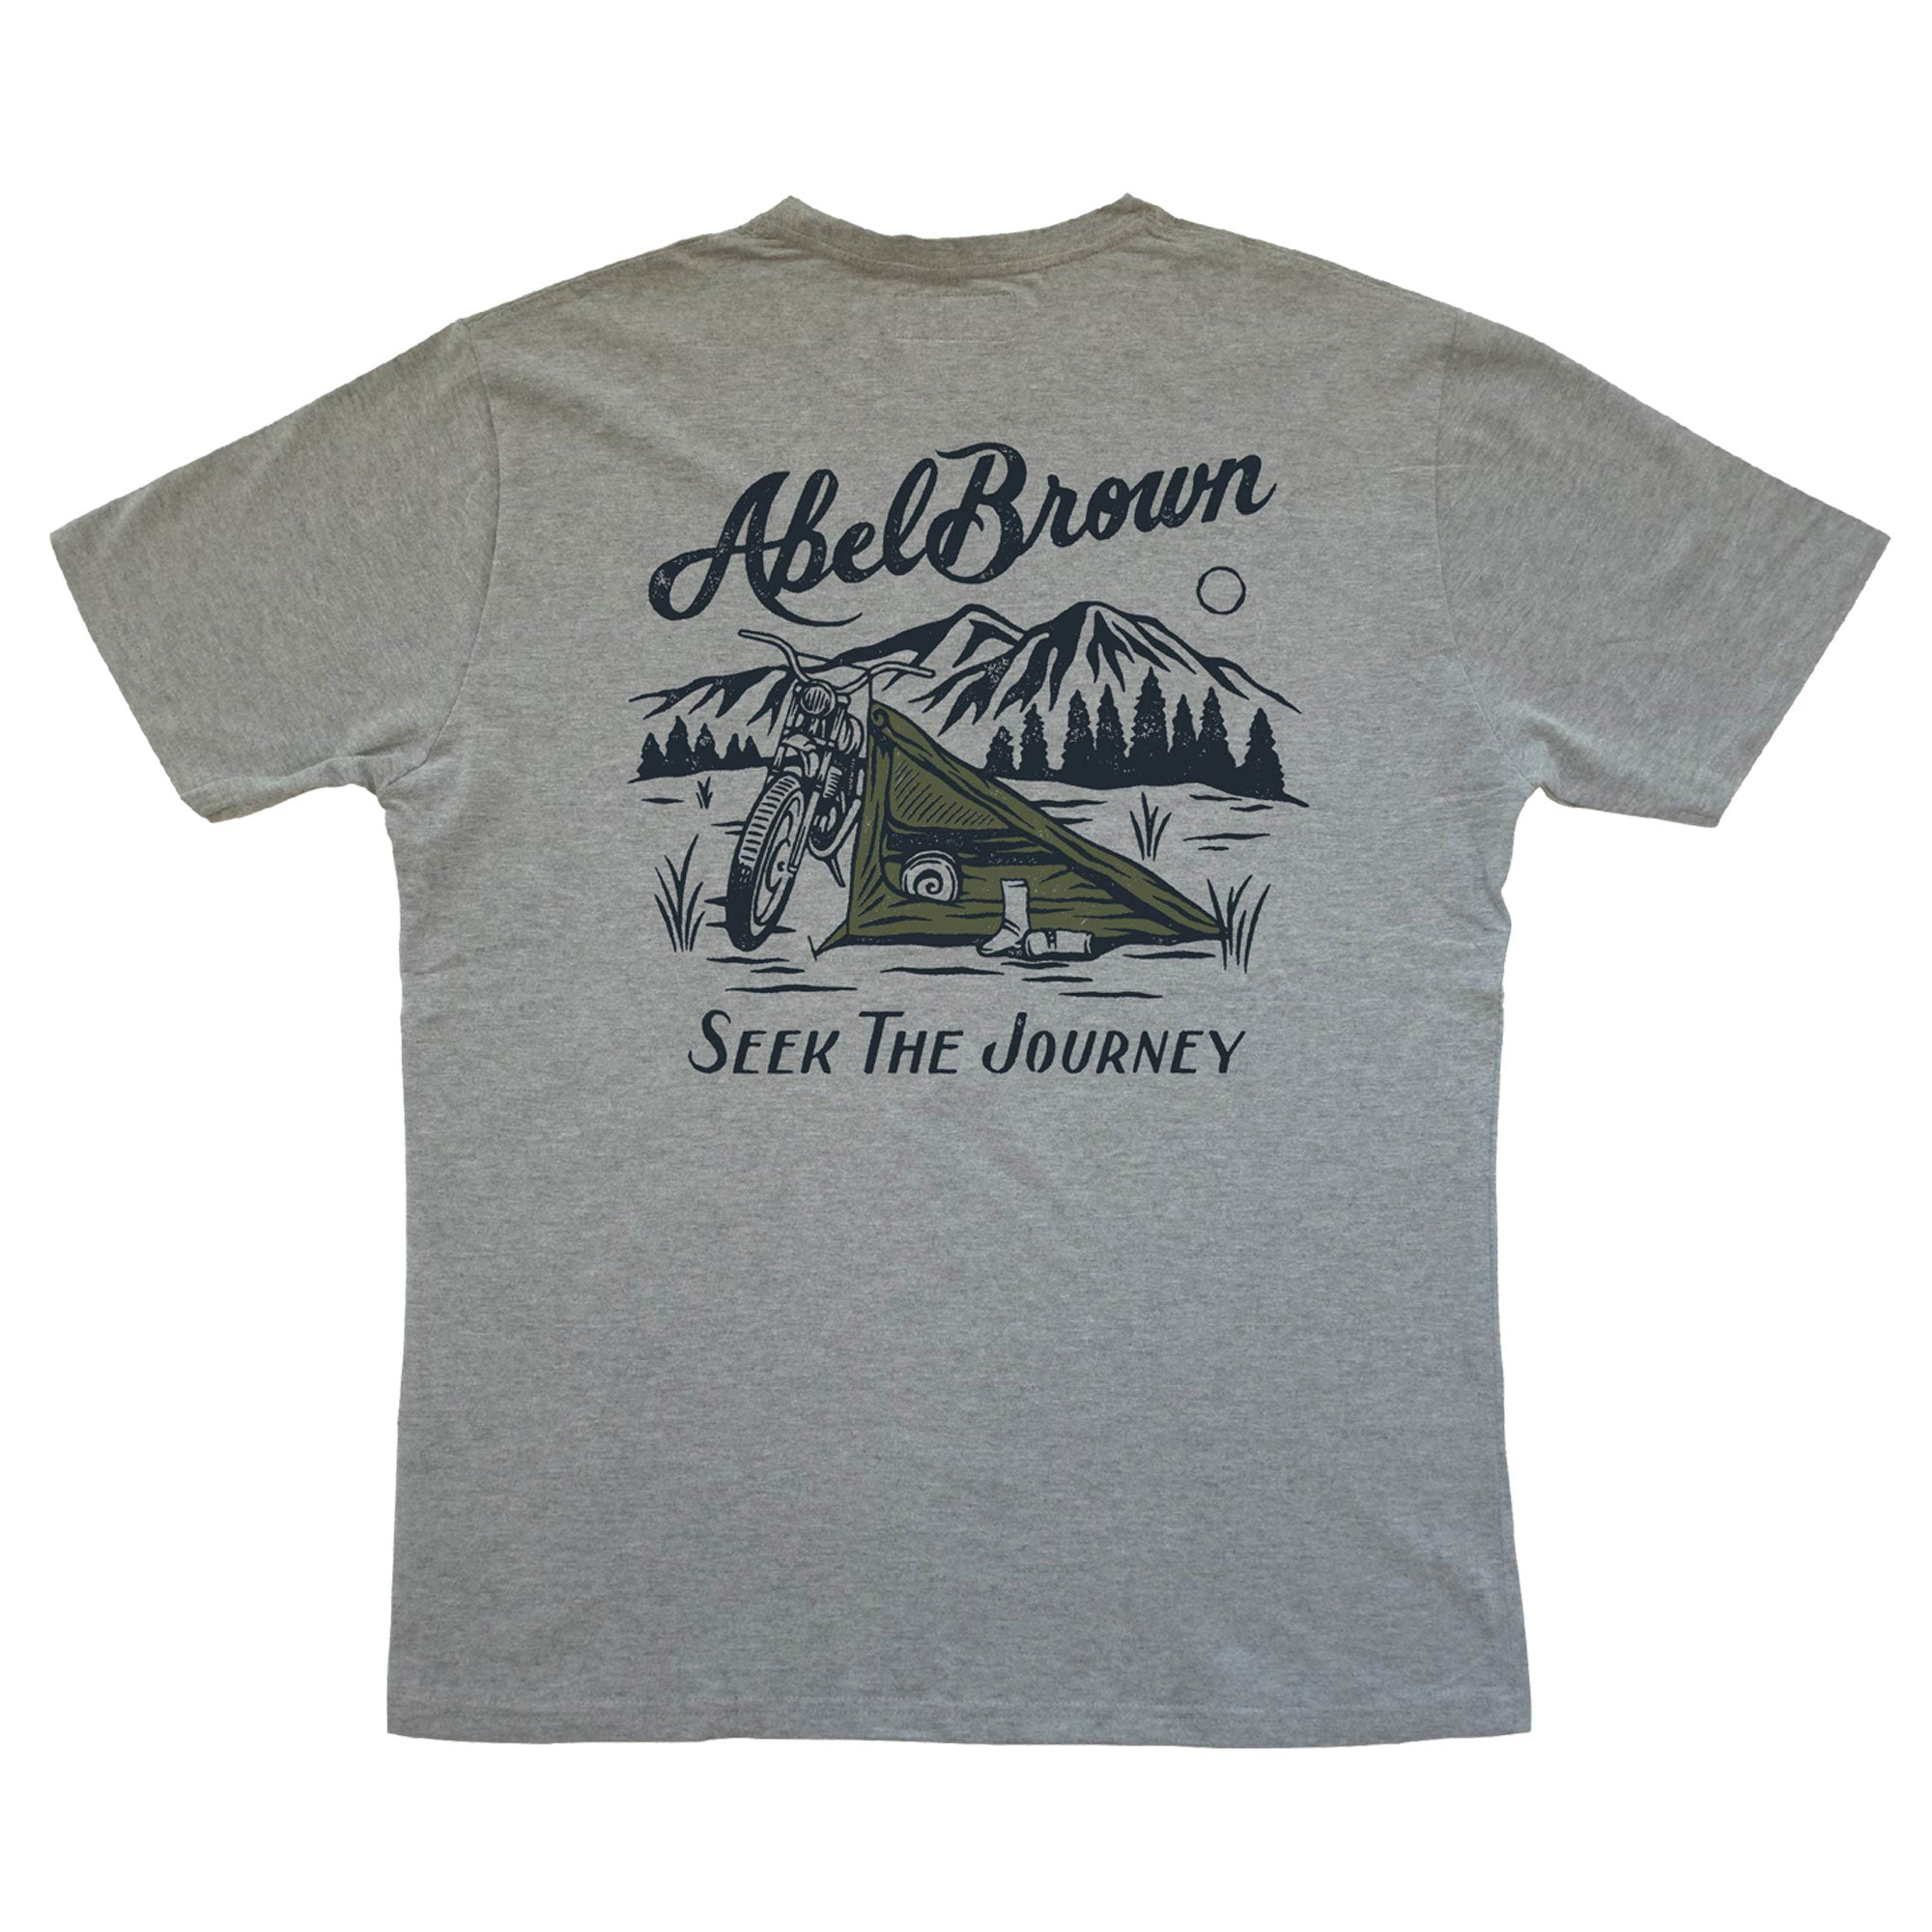 Abel Brown Nomad Tent t-shirt printed on organic cotton softest tee shirt in your closet.  Shows picture of our Nomad tent fixed to a motorcycle in the mountains